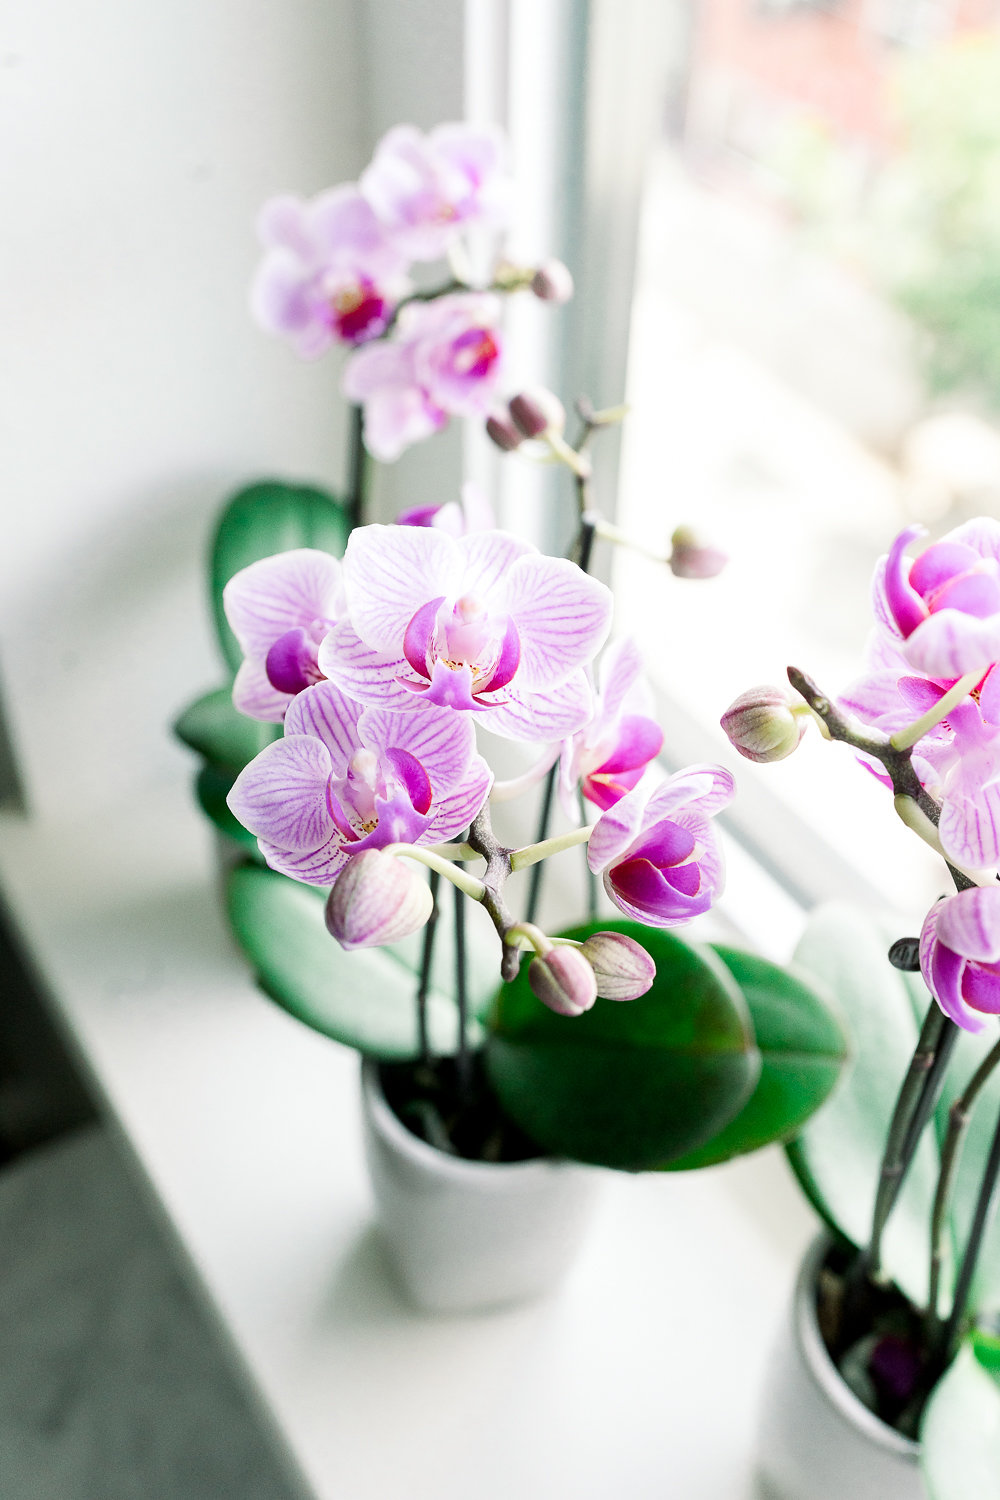 When do you send an orchid plant?